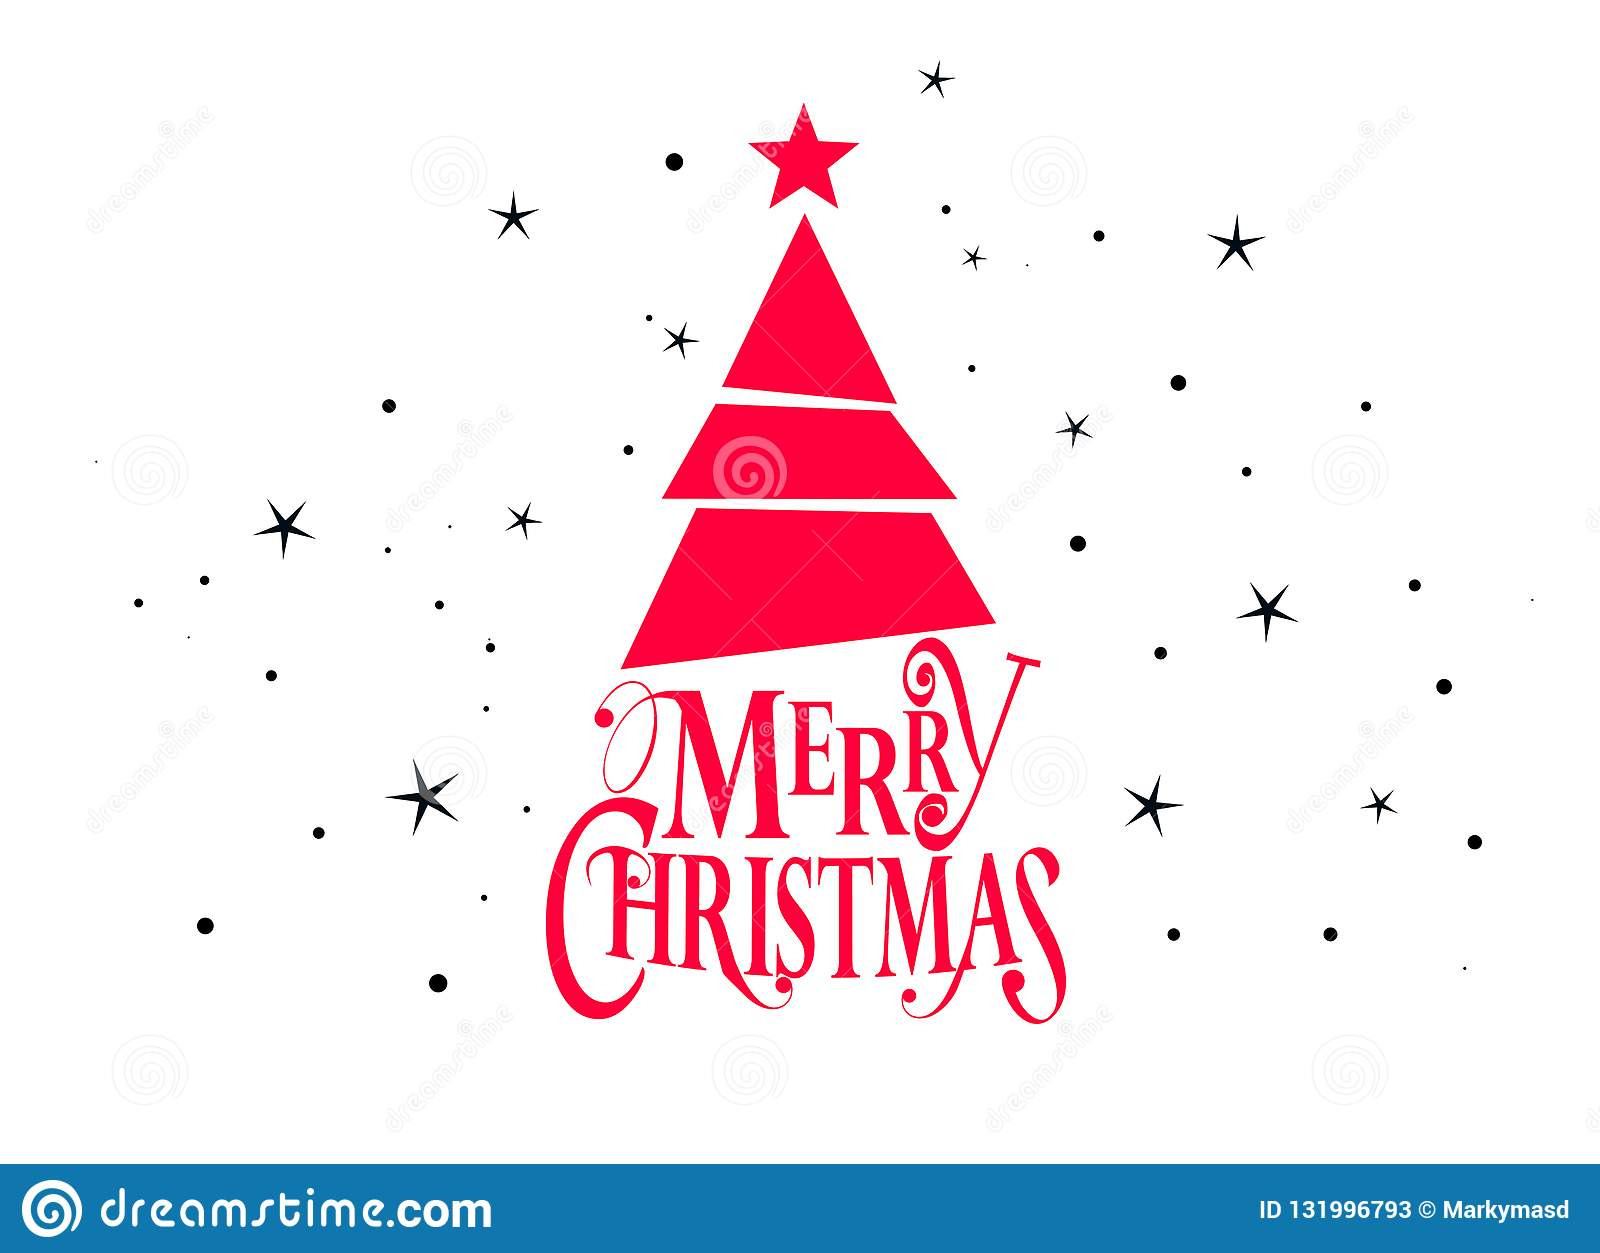 Merry christmas and happy new year vector design with christmas tree and stars